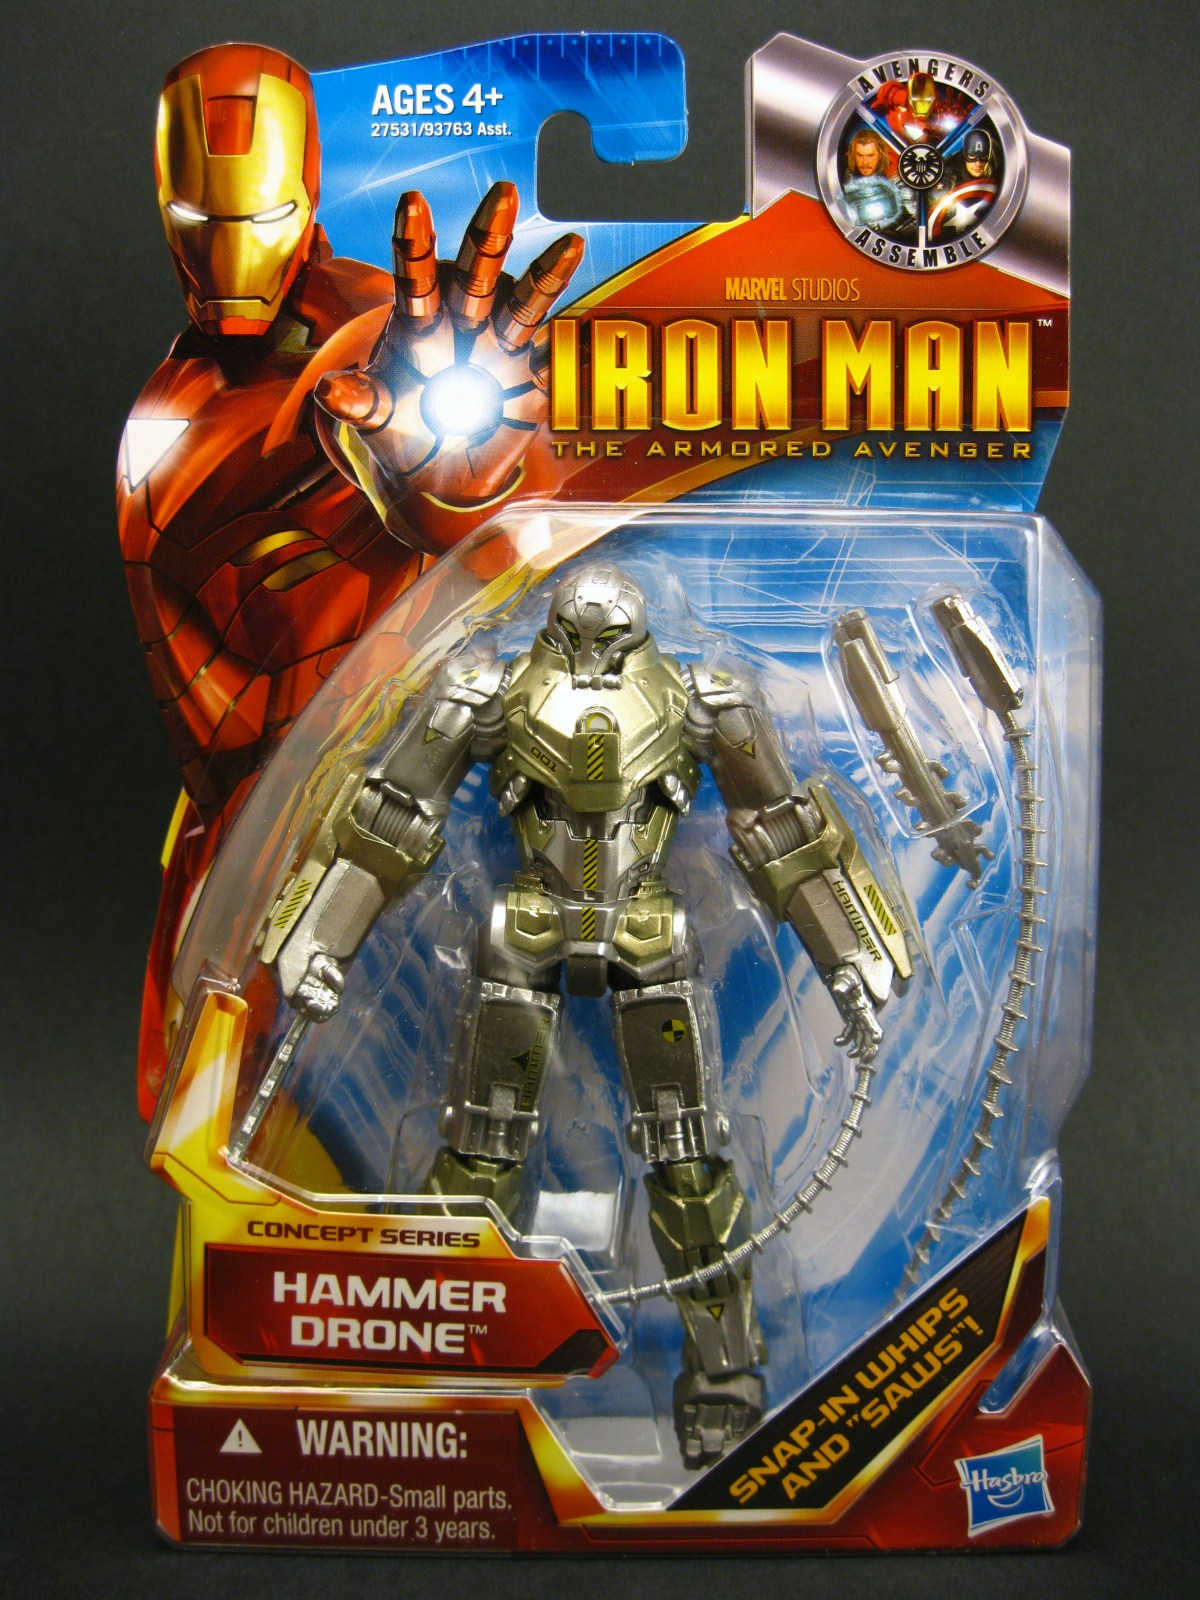 drone adventures with Iron Man Armored Adventures 375 Hammer on Cusco Travel Guide Peru also Drone Aerial Video South Africa Namibia furthermore Popular Toys And Games For Kids This Year further Page1 as well Ghost Drone Aerial Filming Has Never Been Easier.